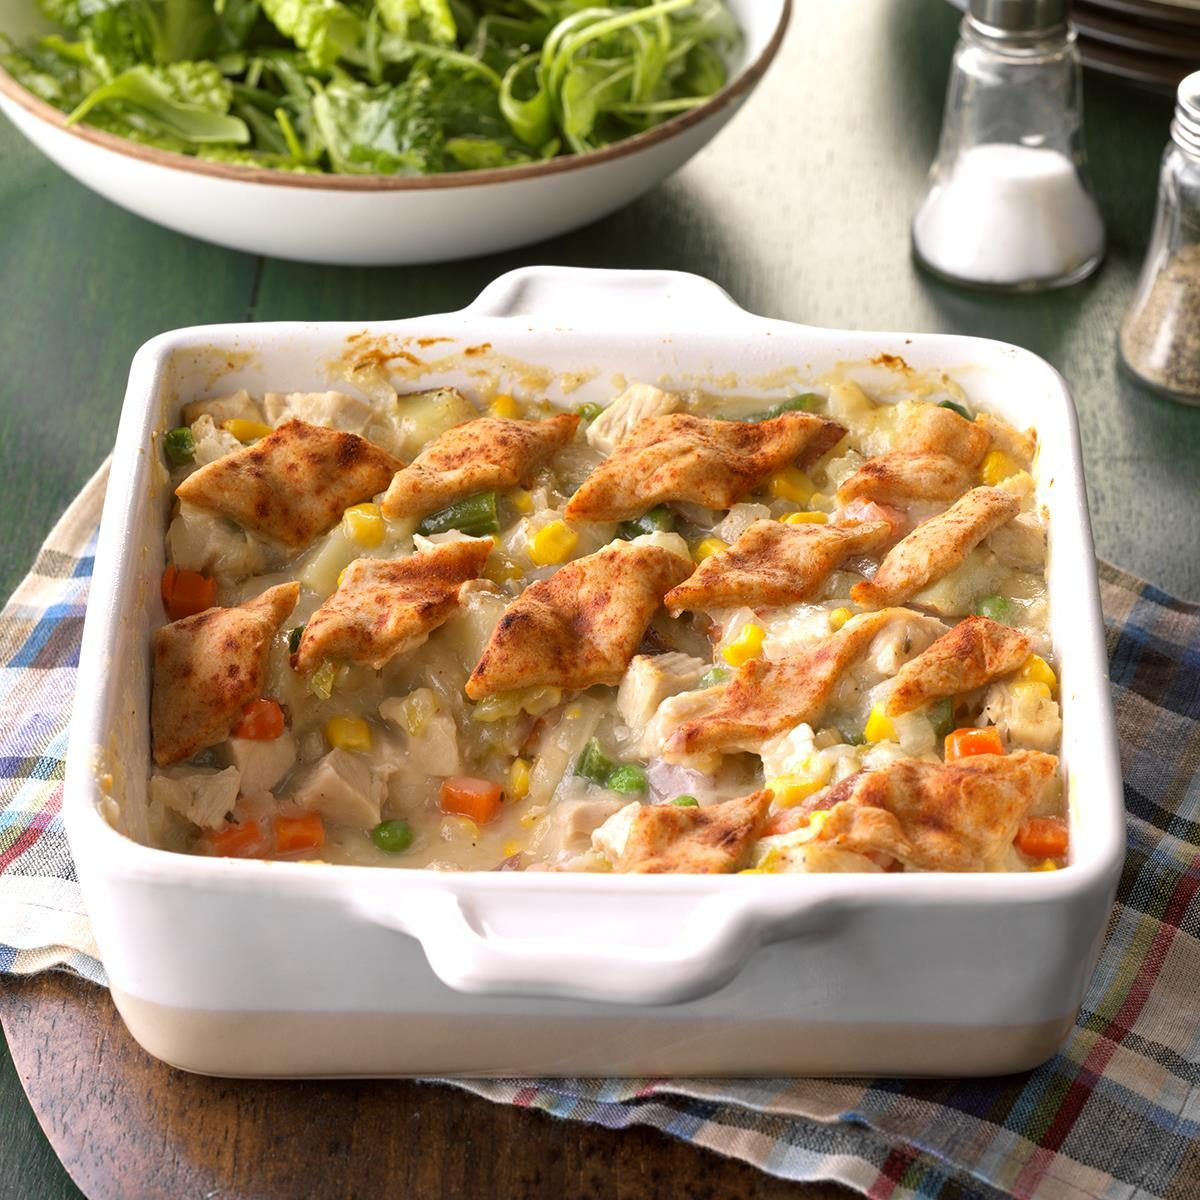 Day 30: Pastry-Topped Turkey Casserole